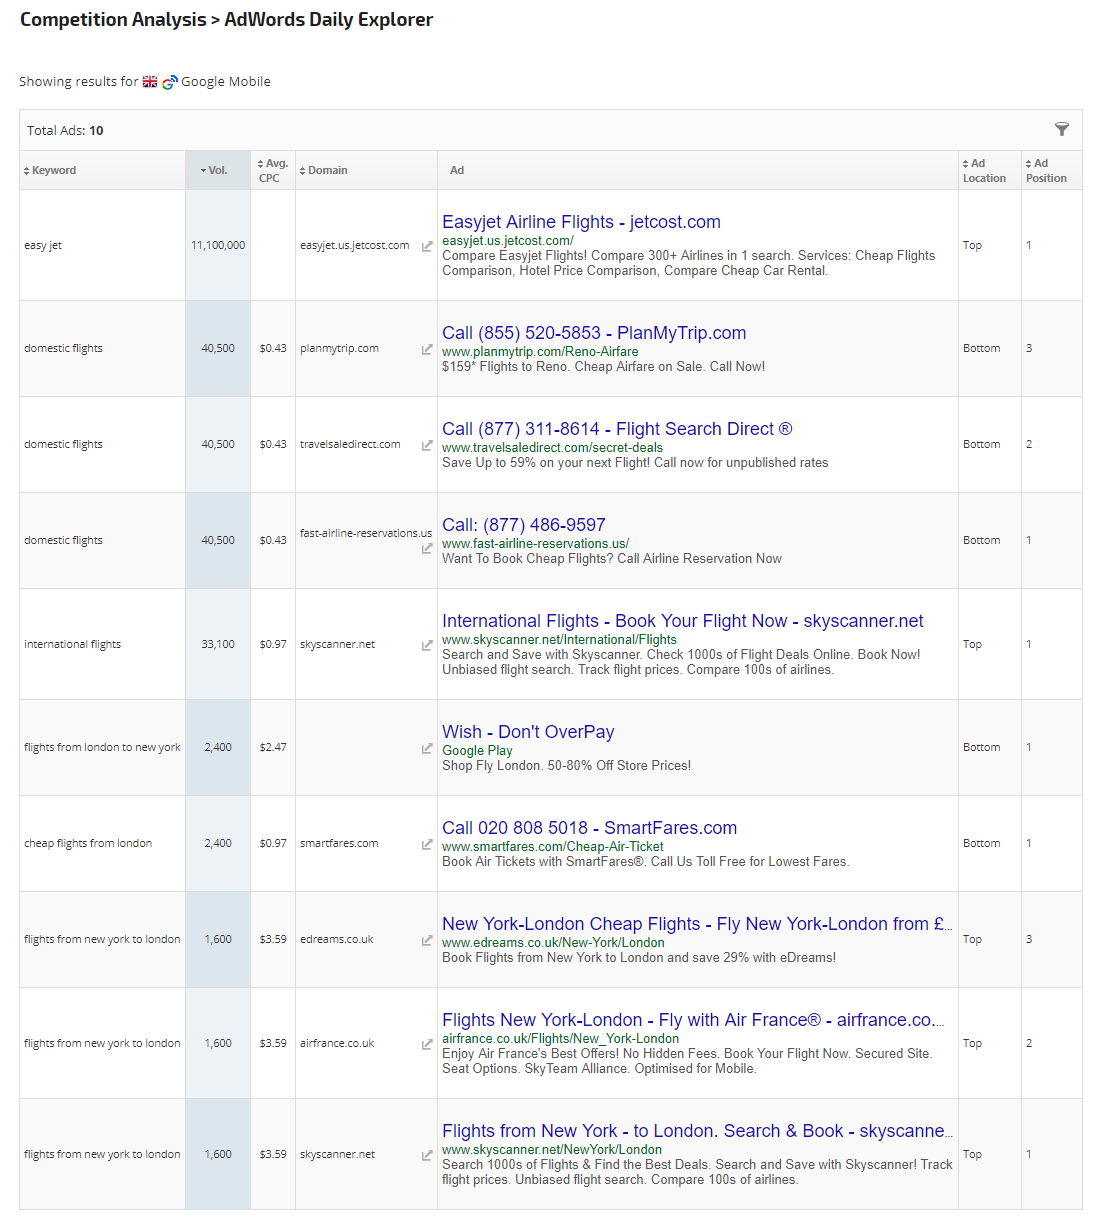 AdWords Daily Explorer